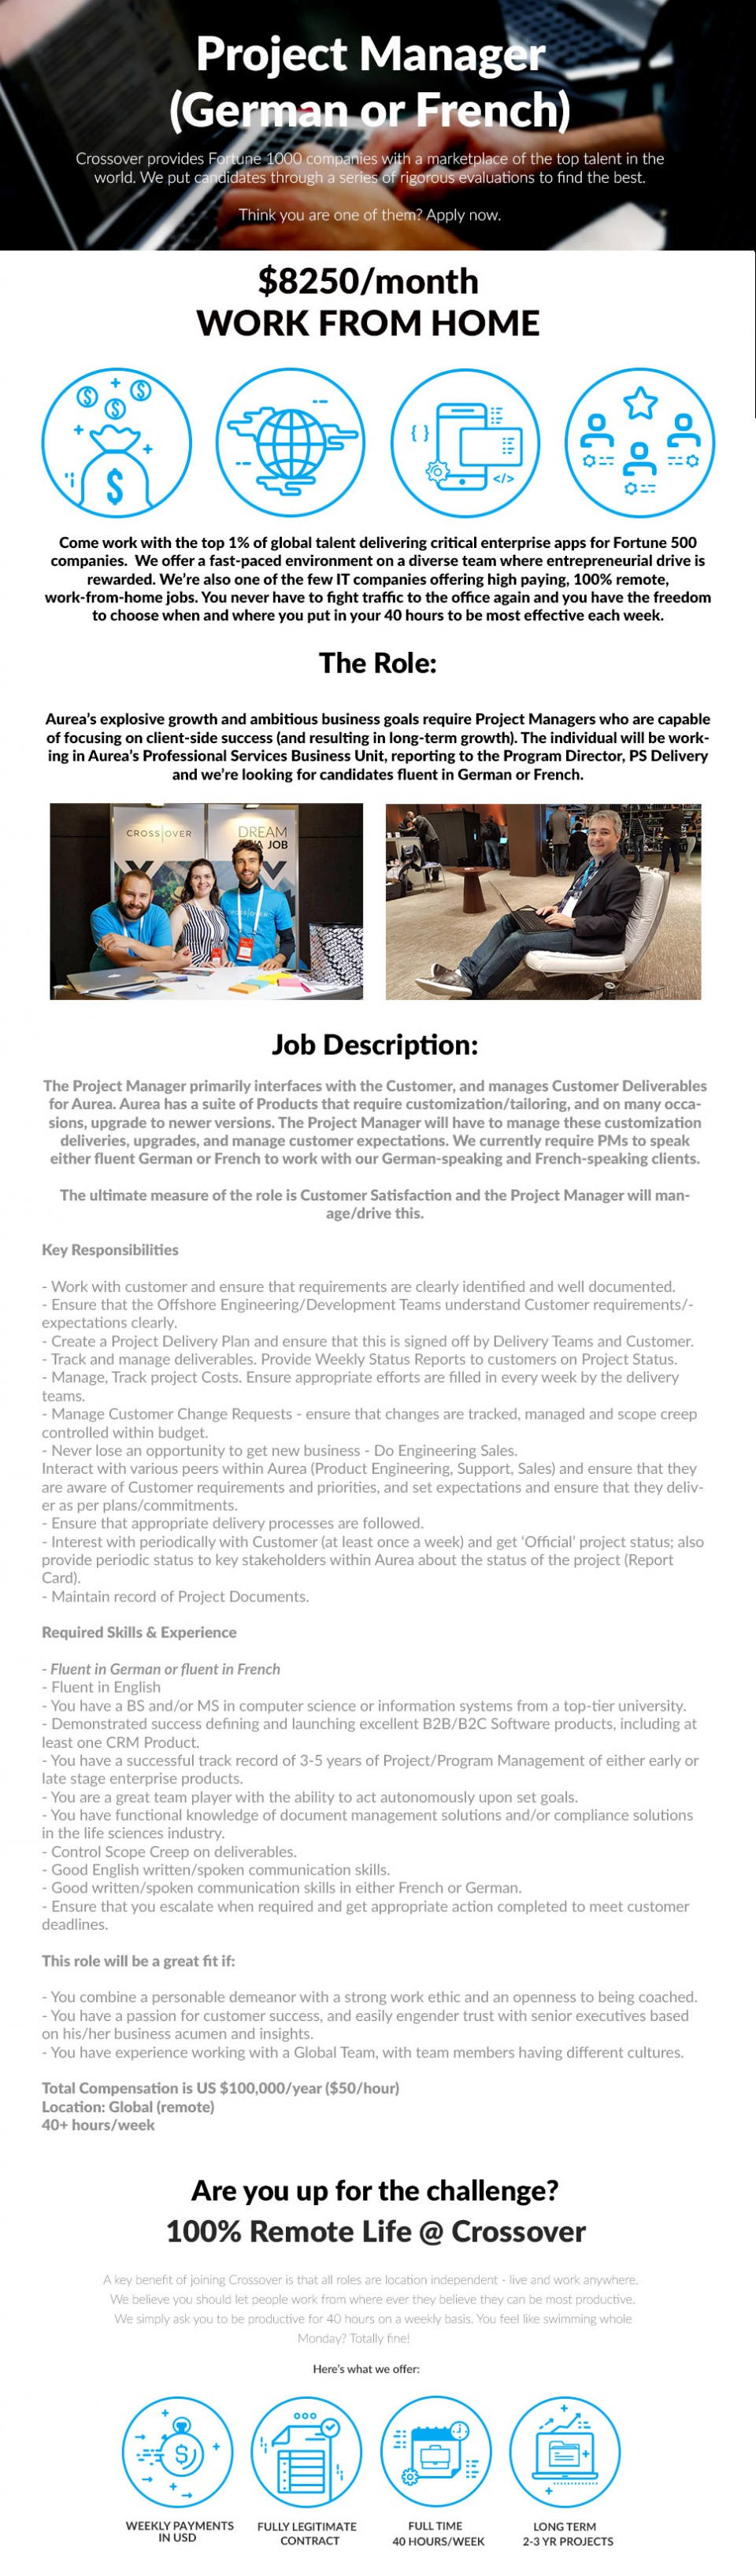 Project Manager (German or French)